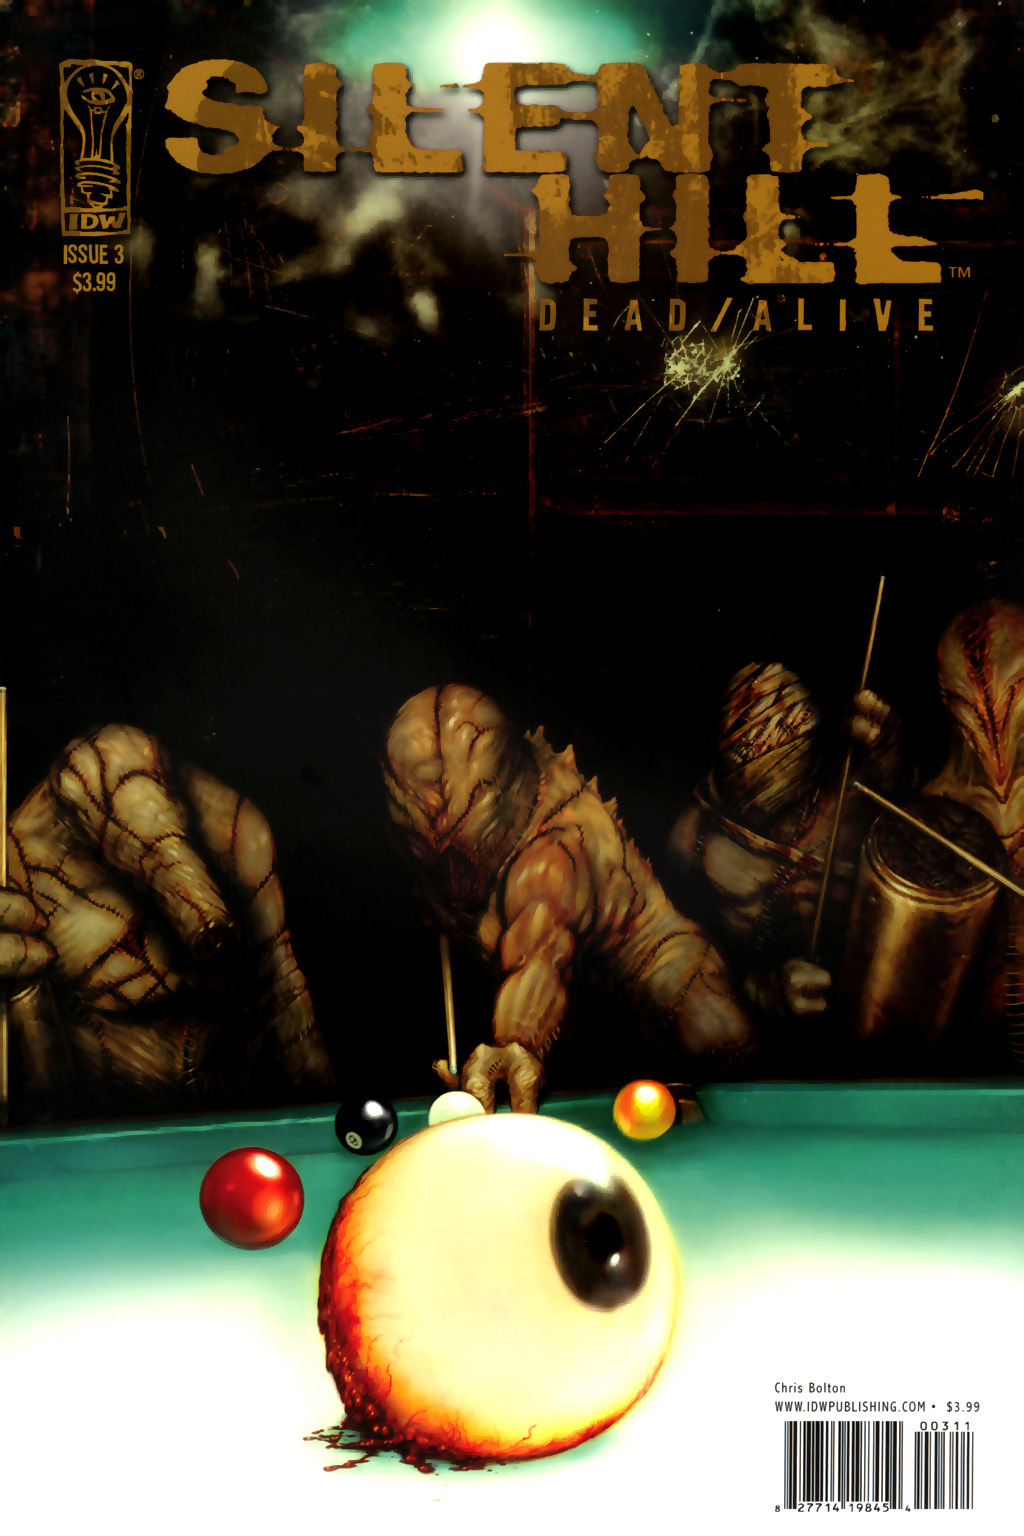 Read online Silent Hill: Dead/Alive comic -  Issue #3 - 1